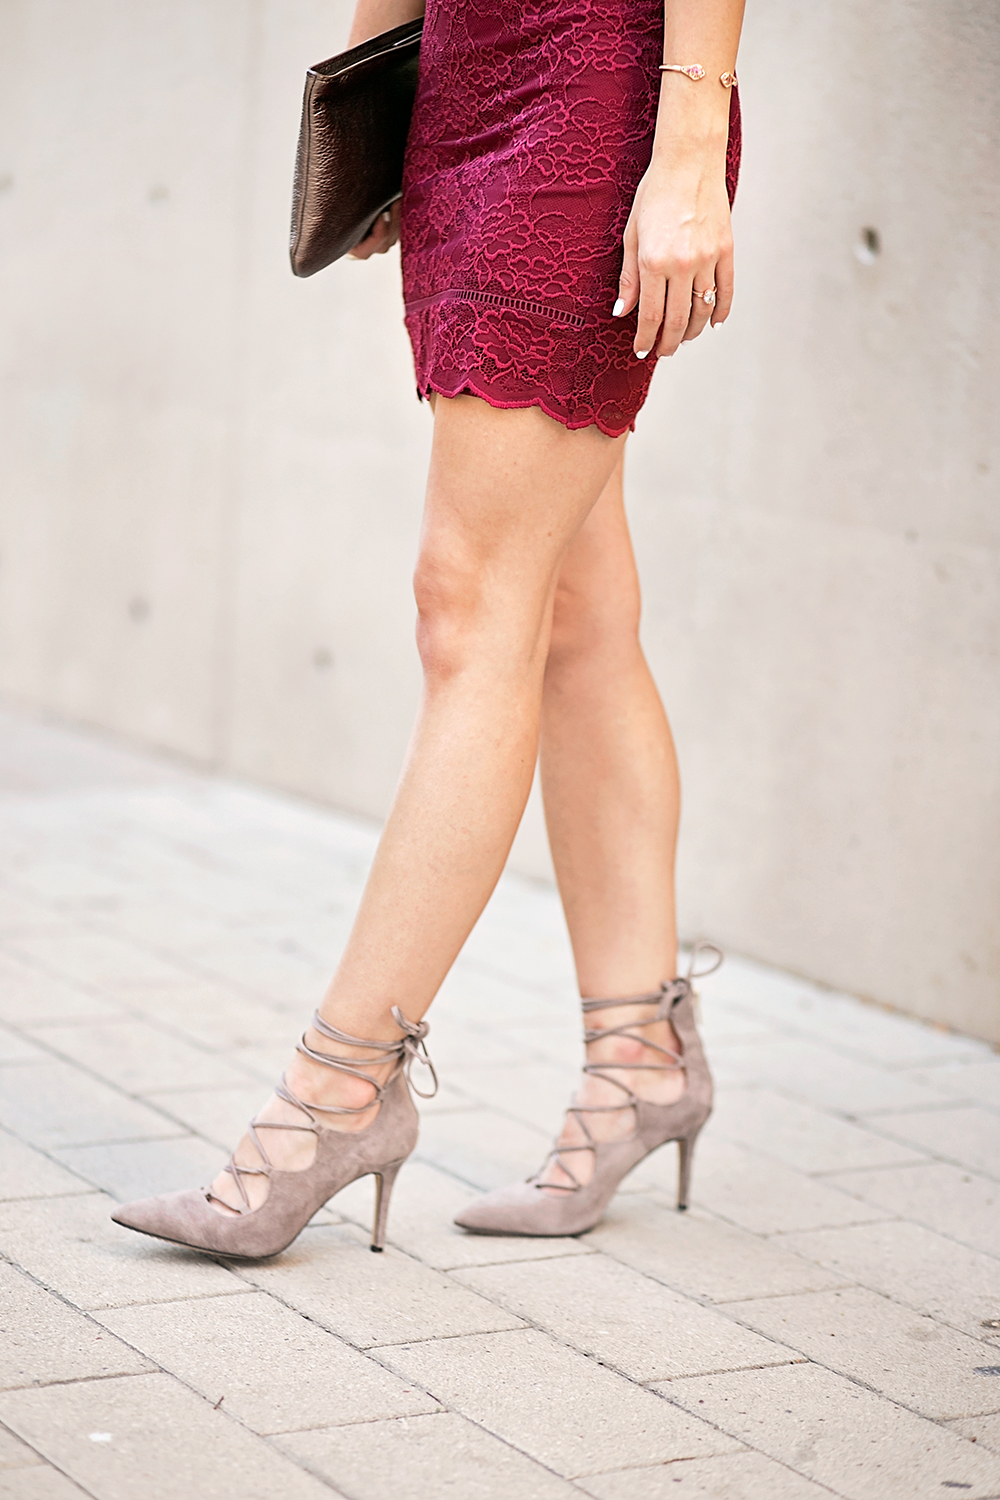 livvyland-blog-olivia-watson-holiday-red-lace-cocktail-dress-party-outfit-winter-holiday-office-nye-what-to-wear-suede-taupe-pumps